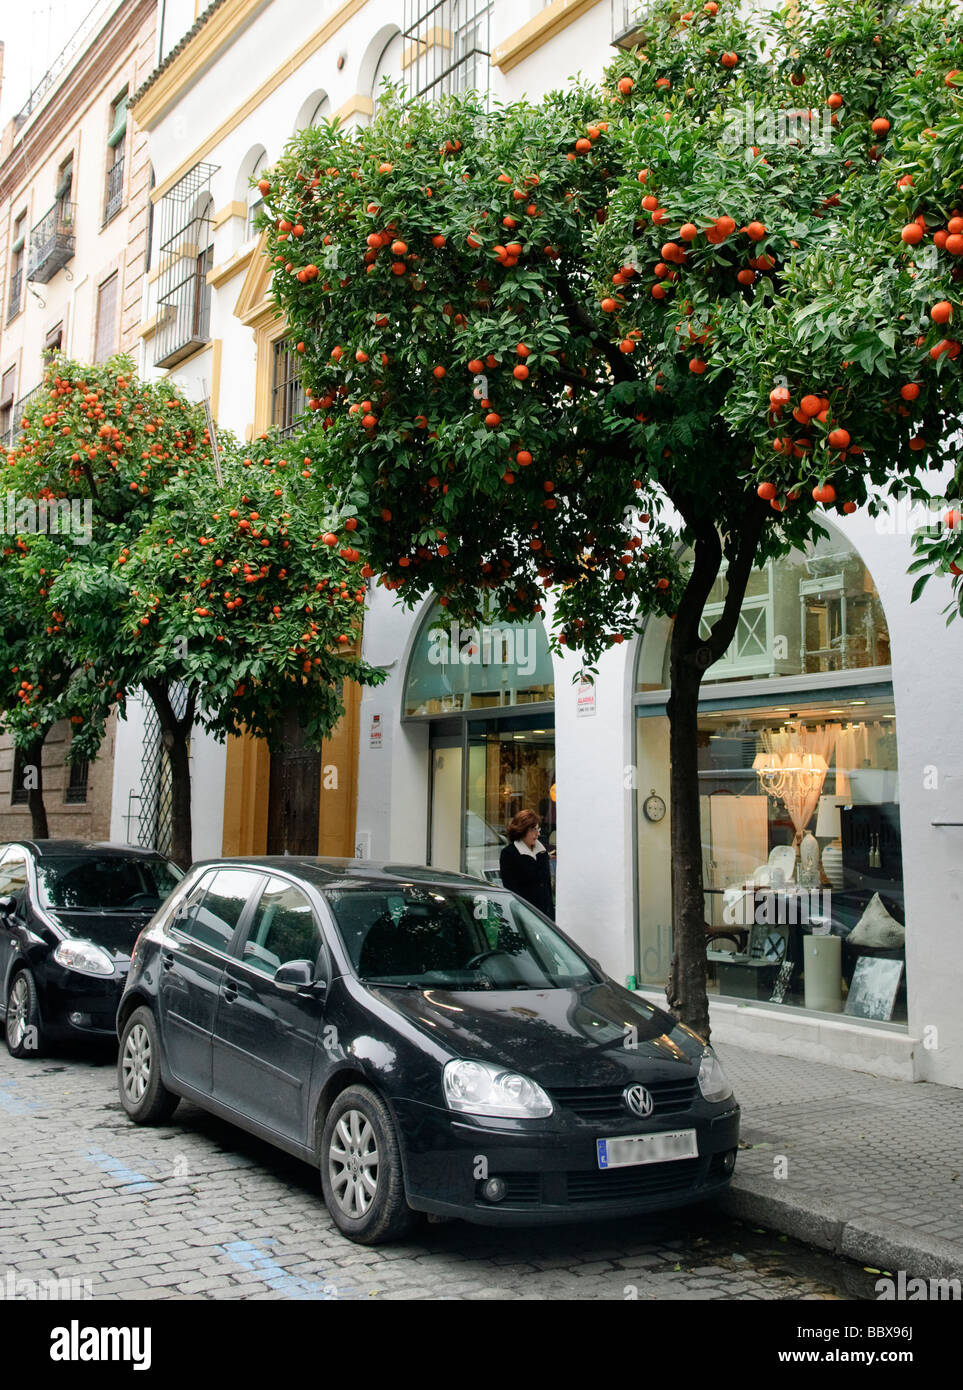 downtown shopping street lined by tangerine trees in Sevilla , Spain - Stock Image